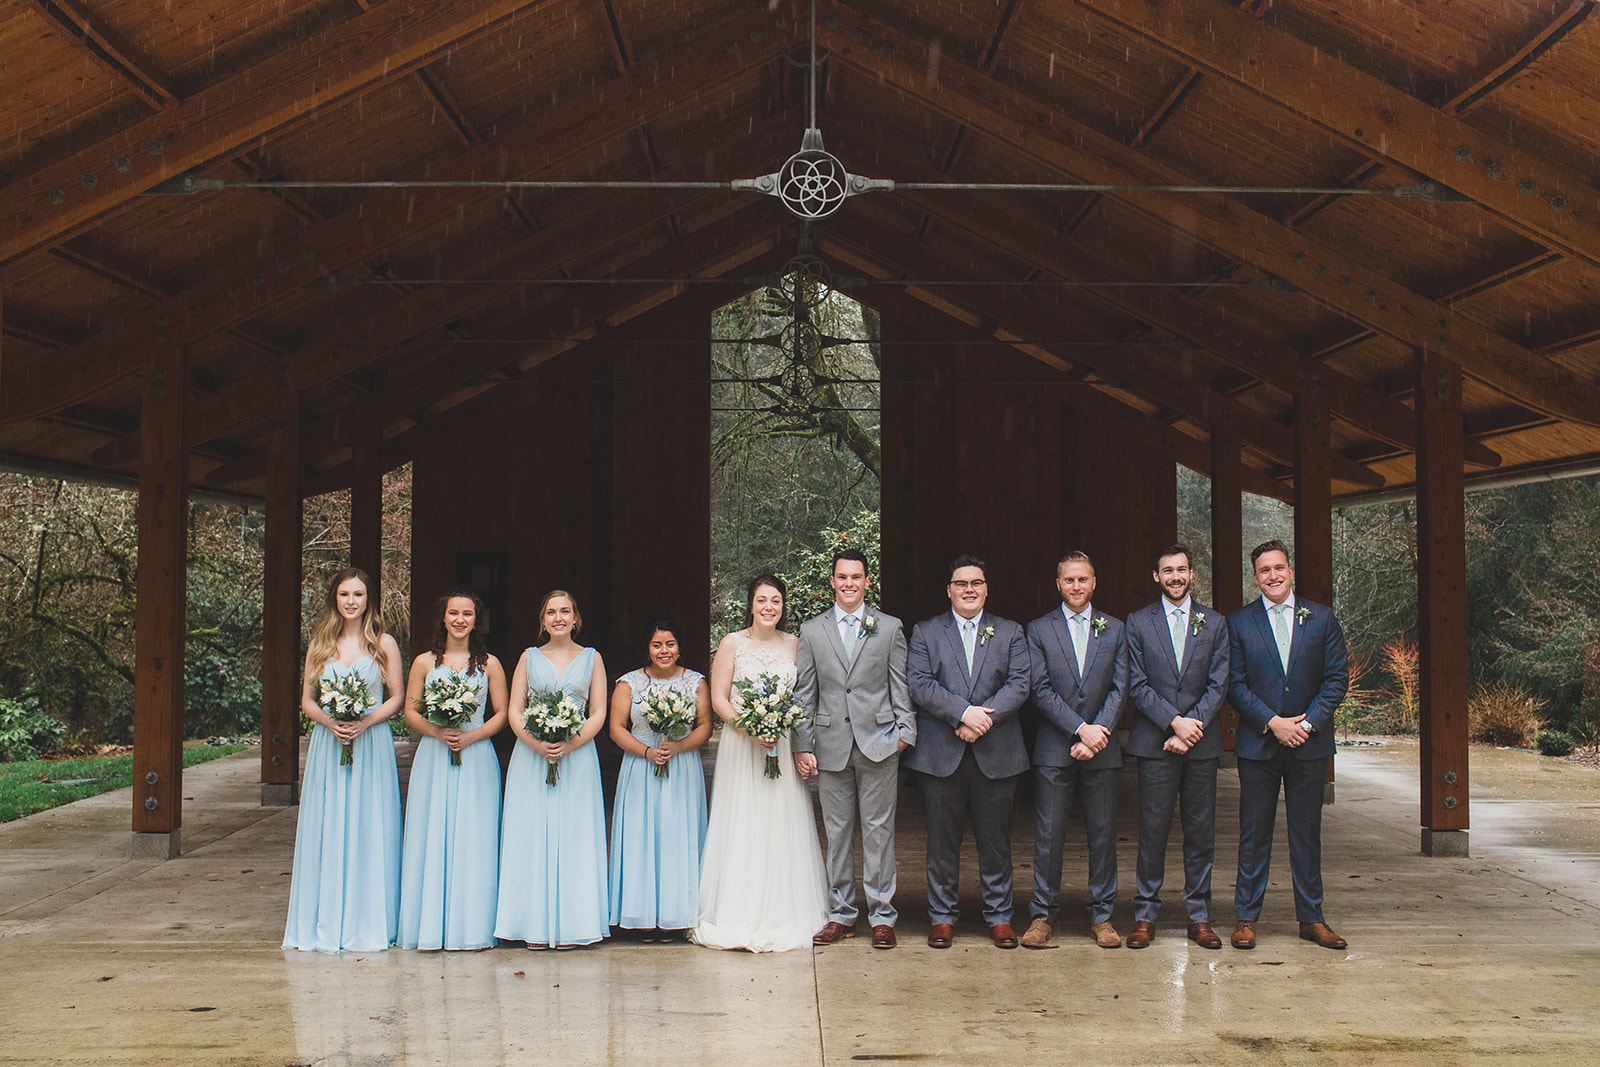 bridal party spokane bride wedding